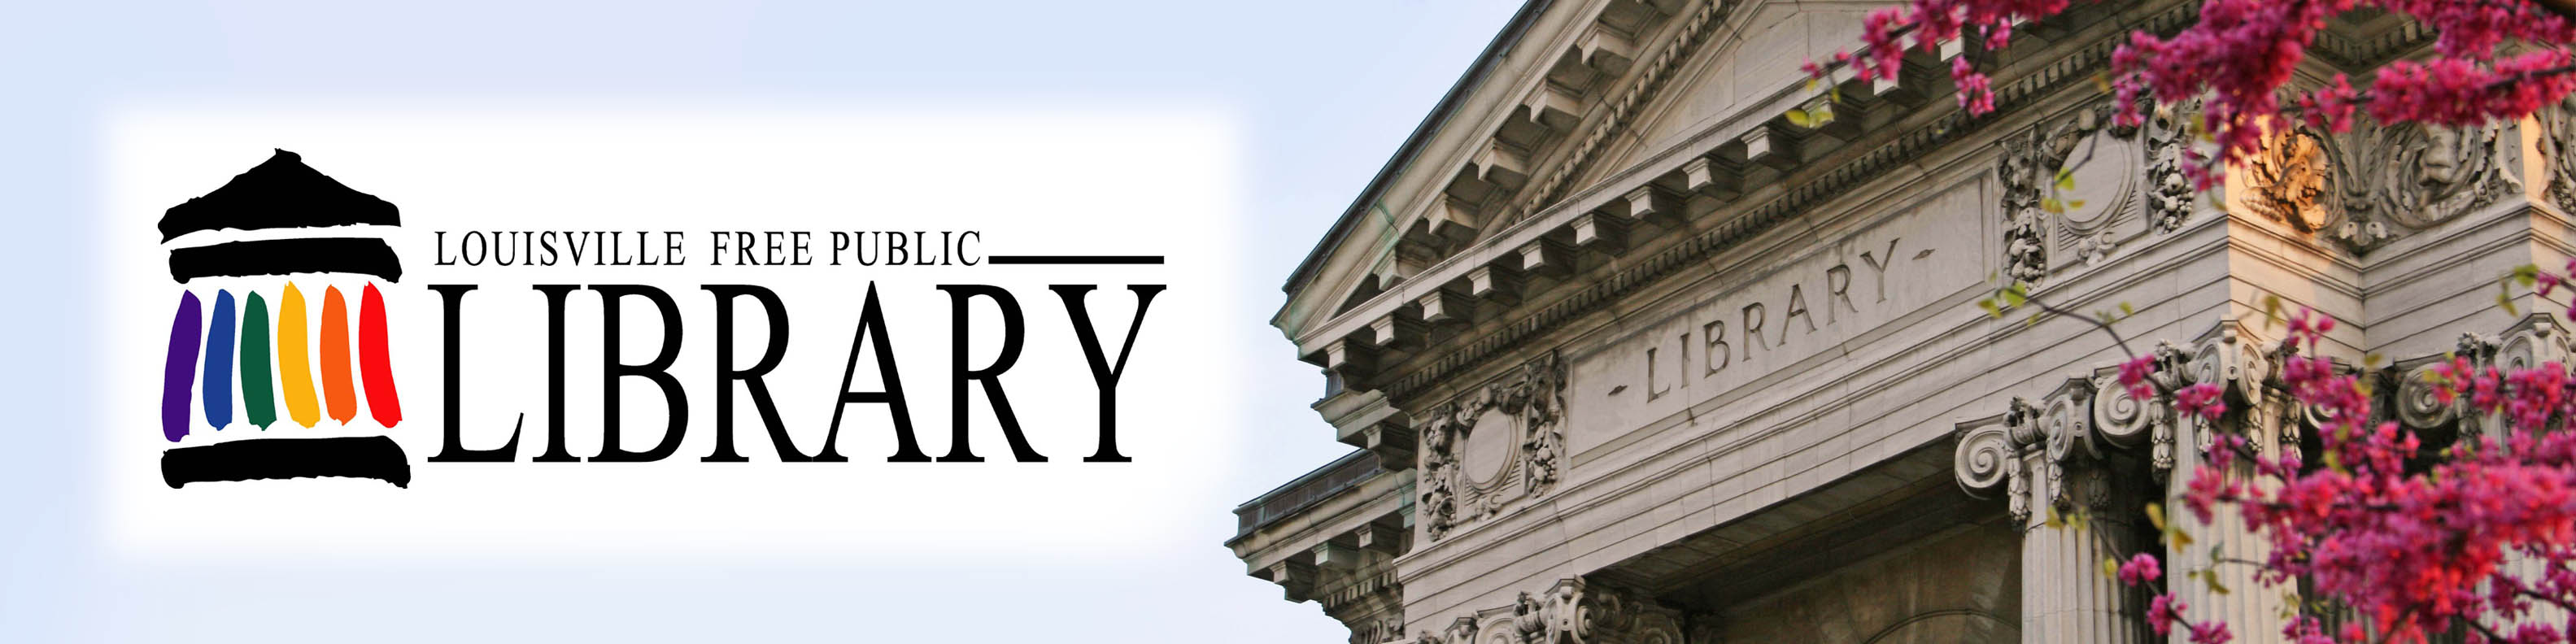 Louisville Free Public Library - logo and picture of kids with library card